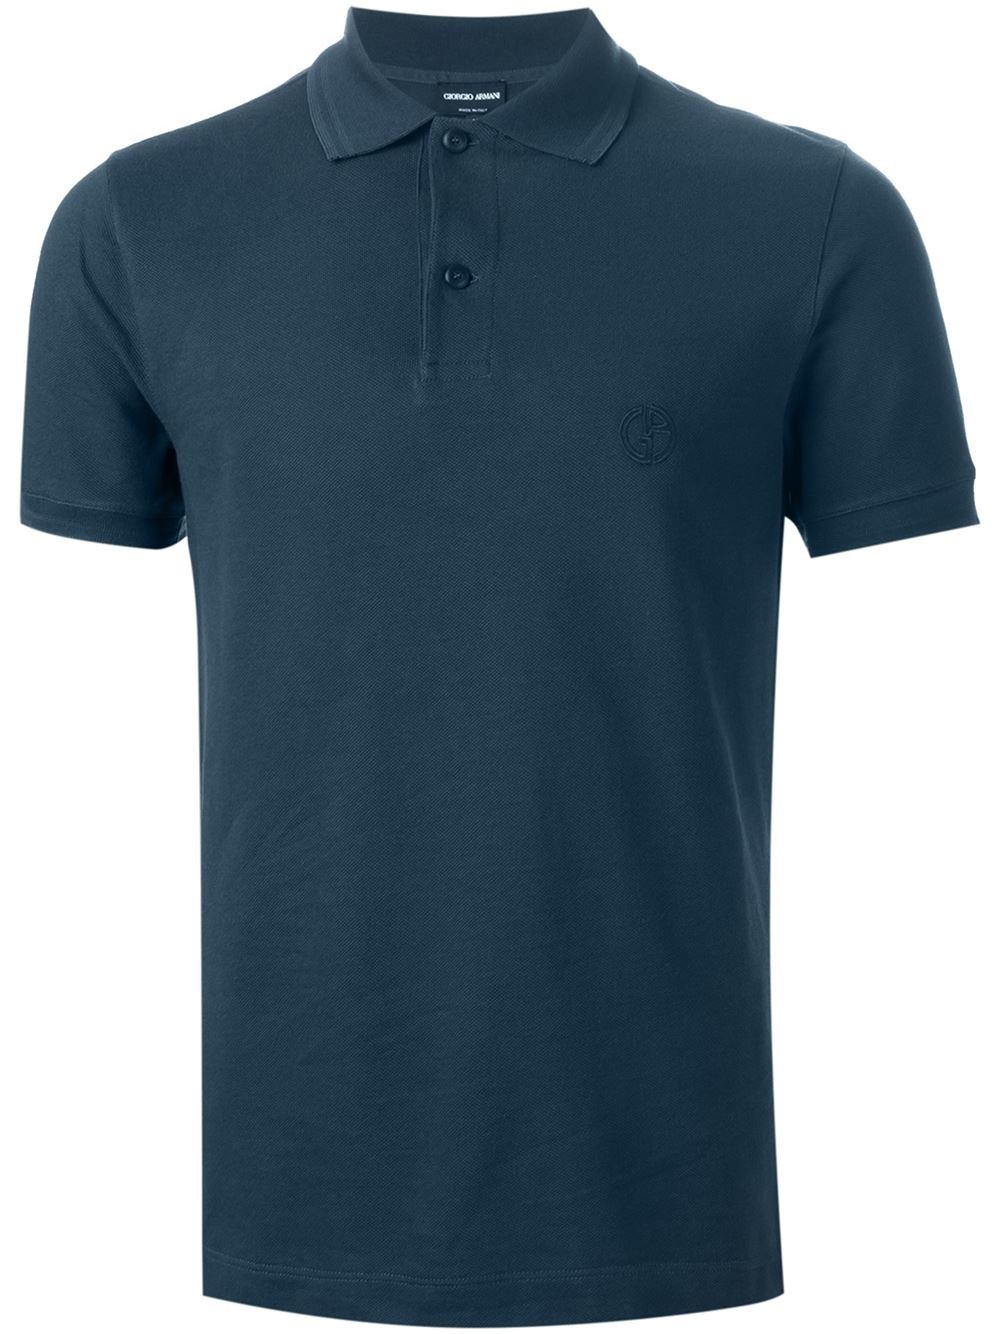 Giorgio armani logo embroidered polo shirt in blue for men for Work polo shirts with logo